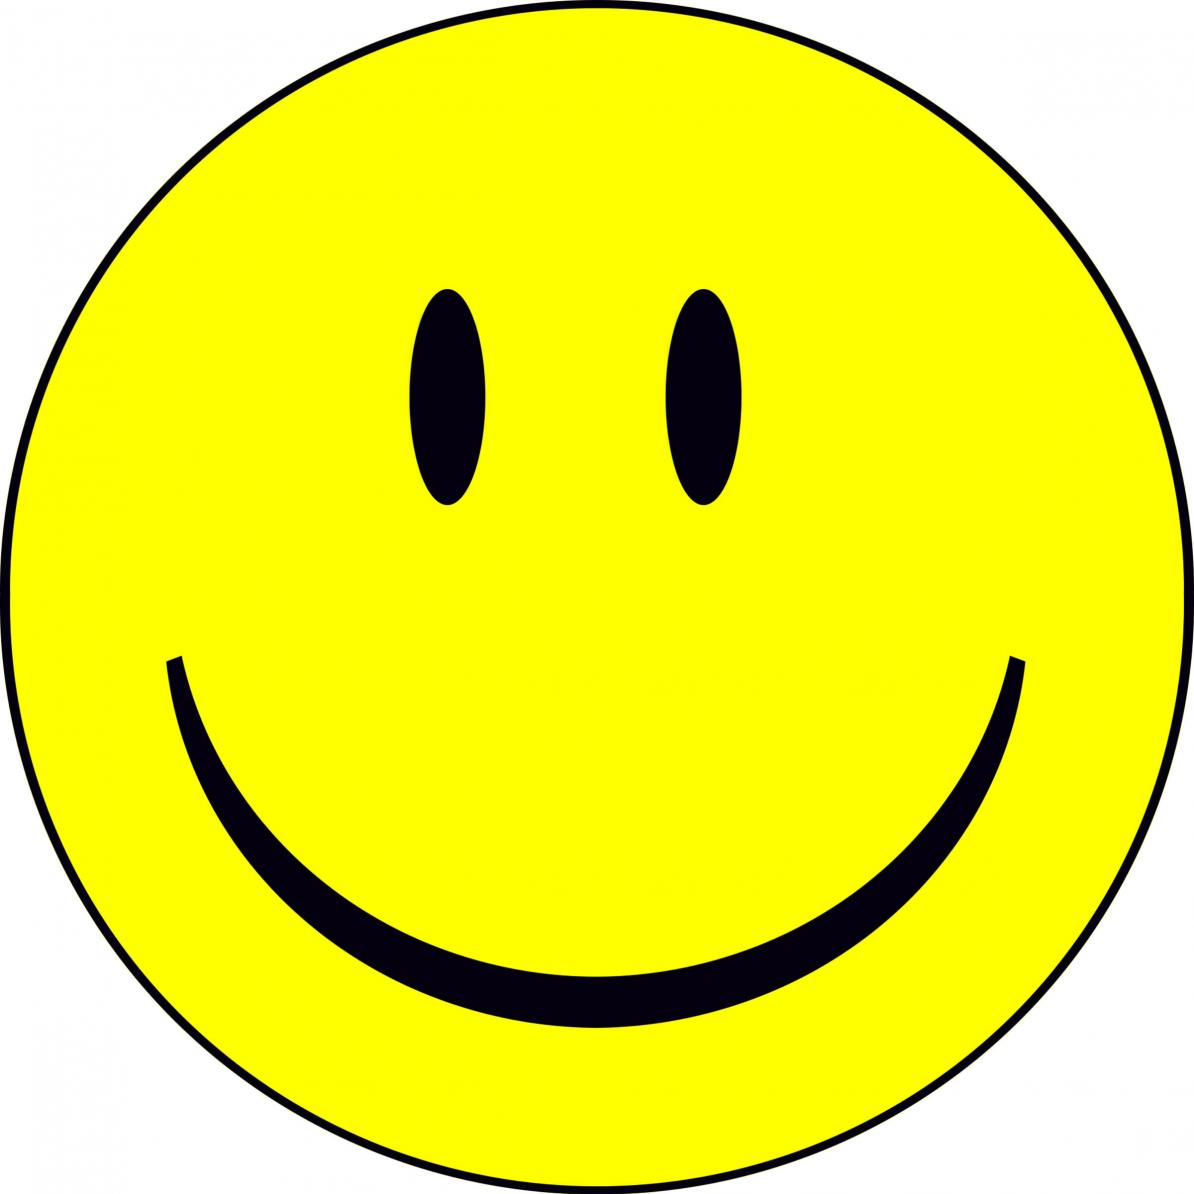 microsoft office clipart emoticons - photo #4